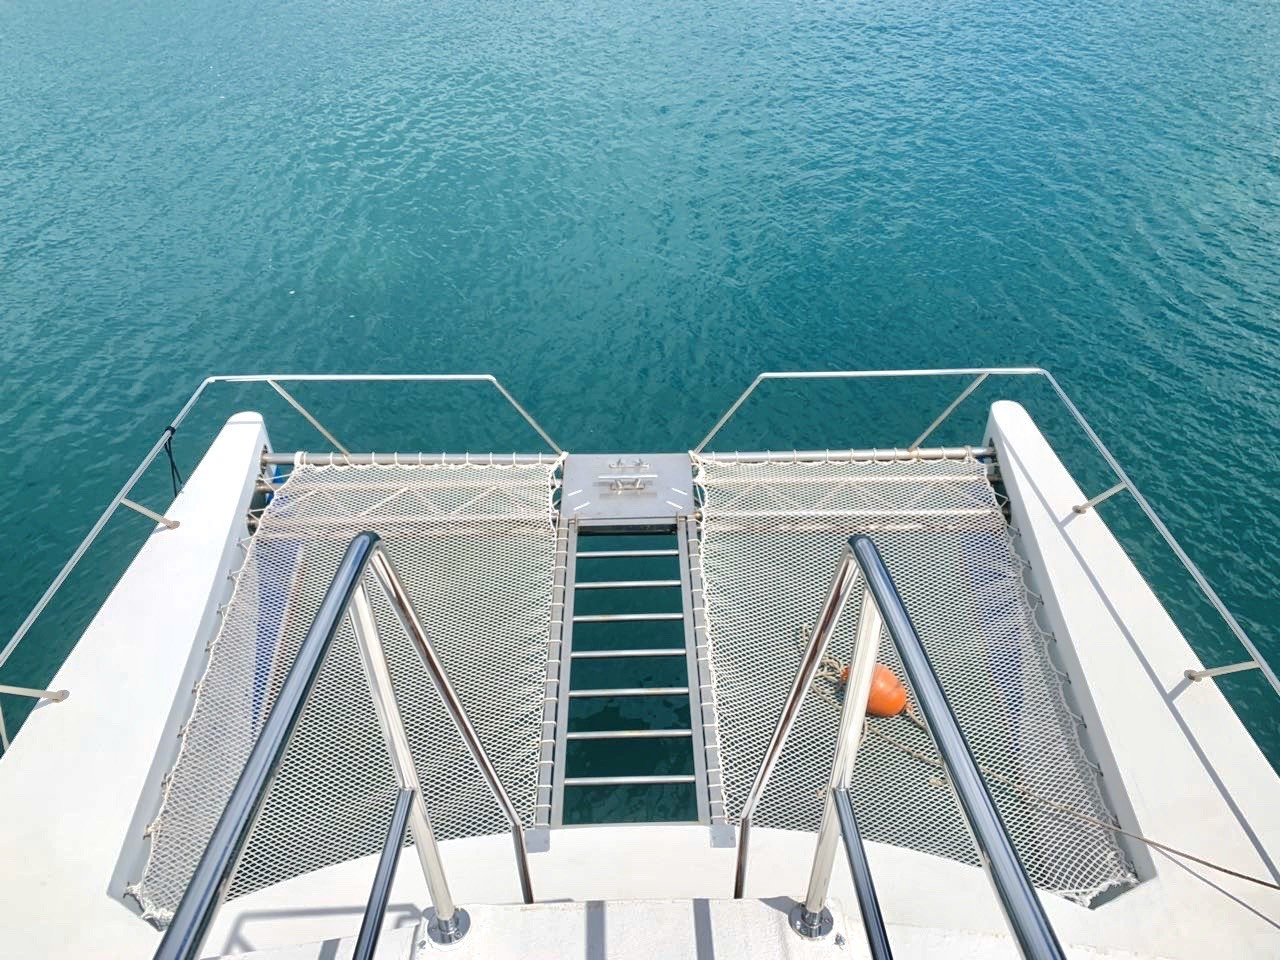 epidaurump catamaran yachting daily tour chill net